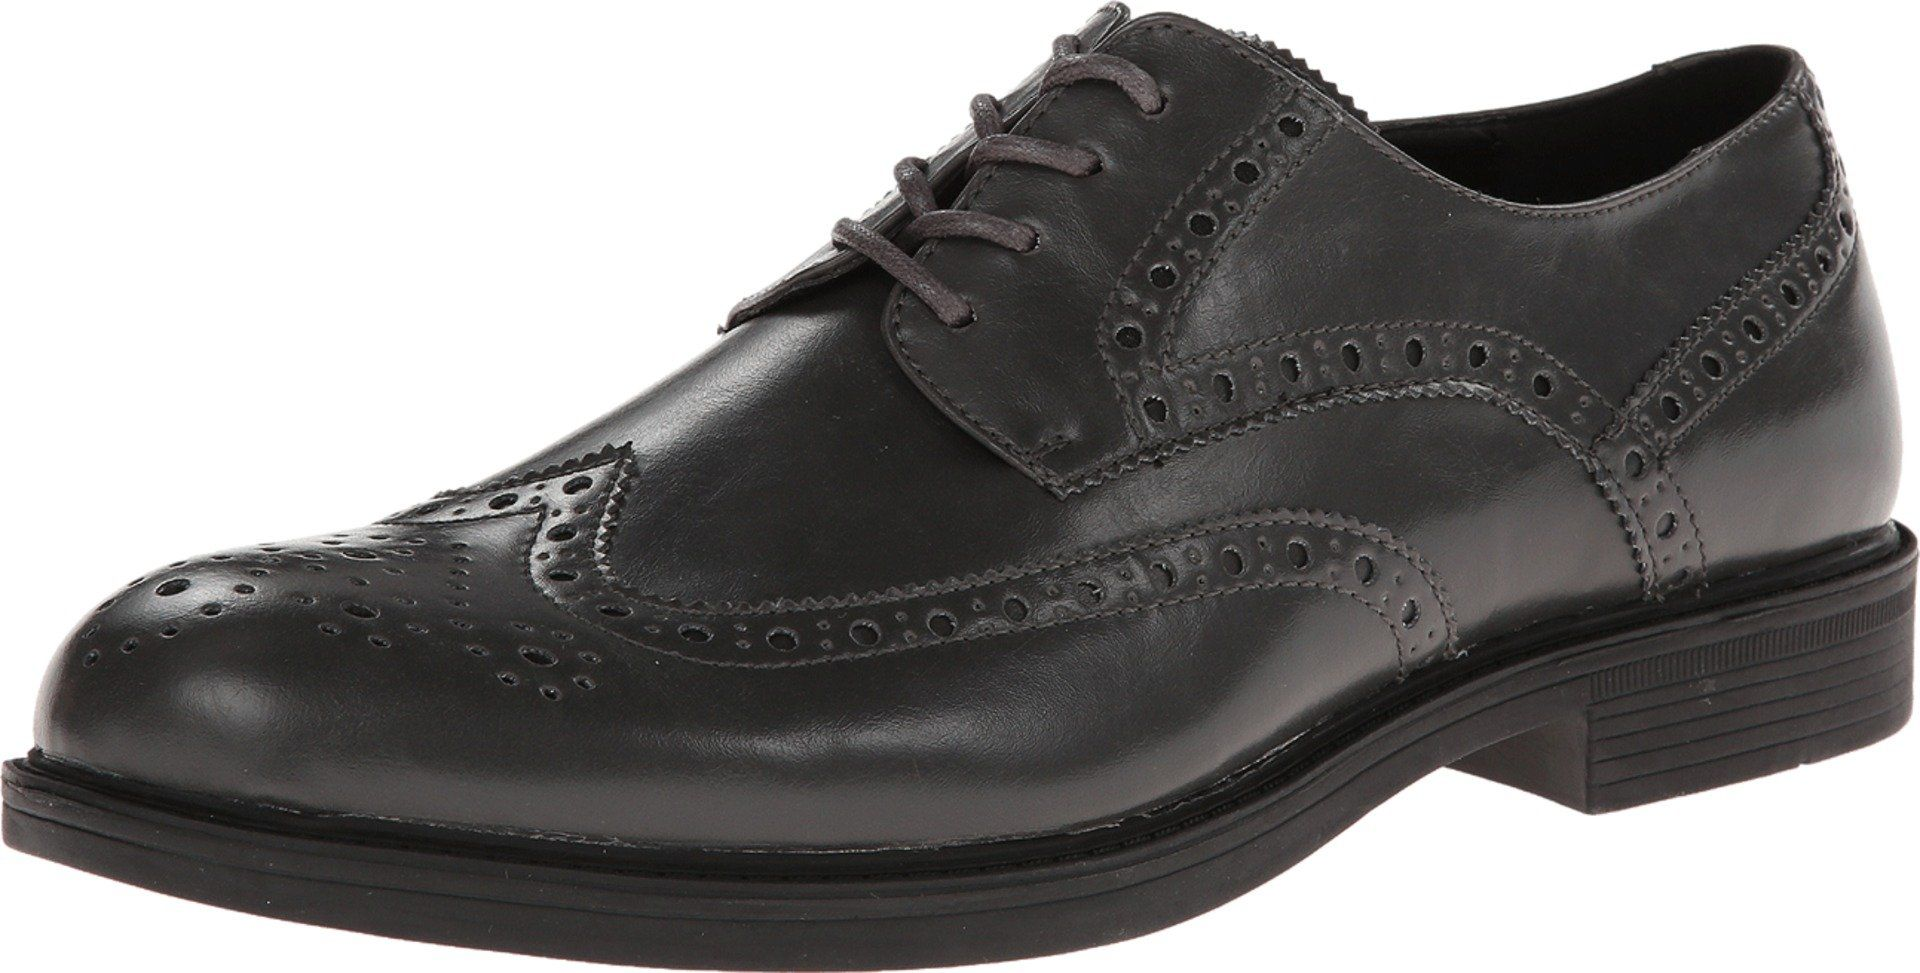 Unlisted Men's Open Wide Oxfords